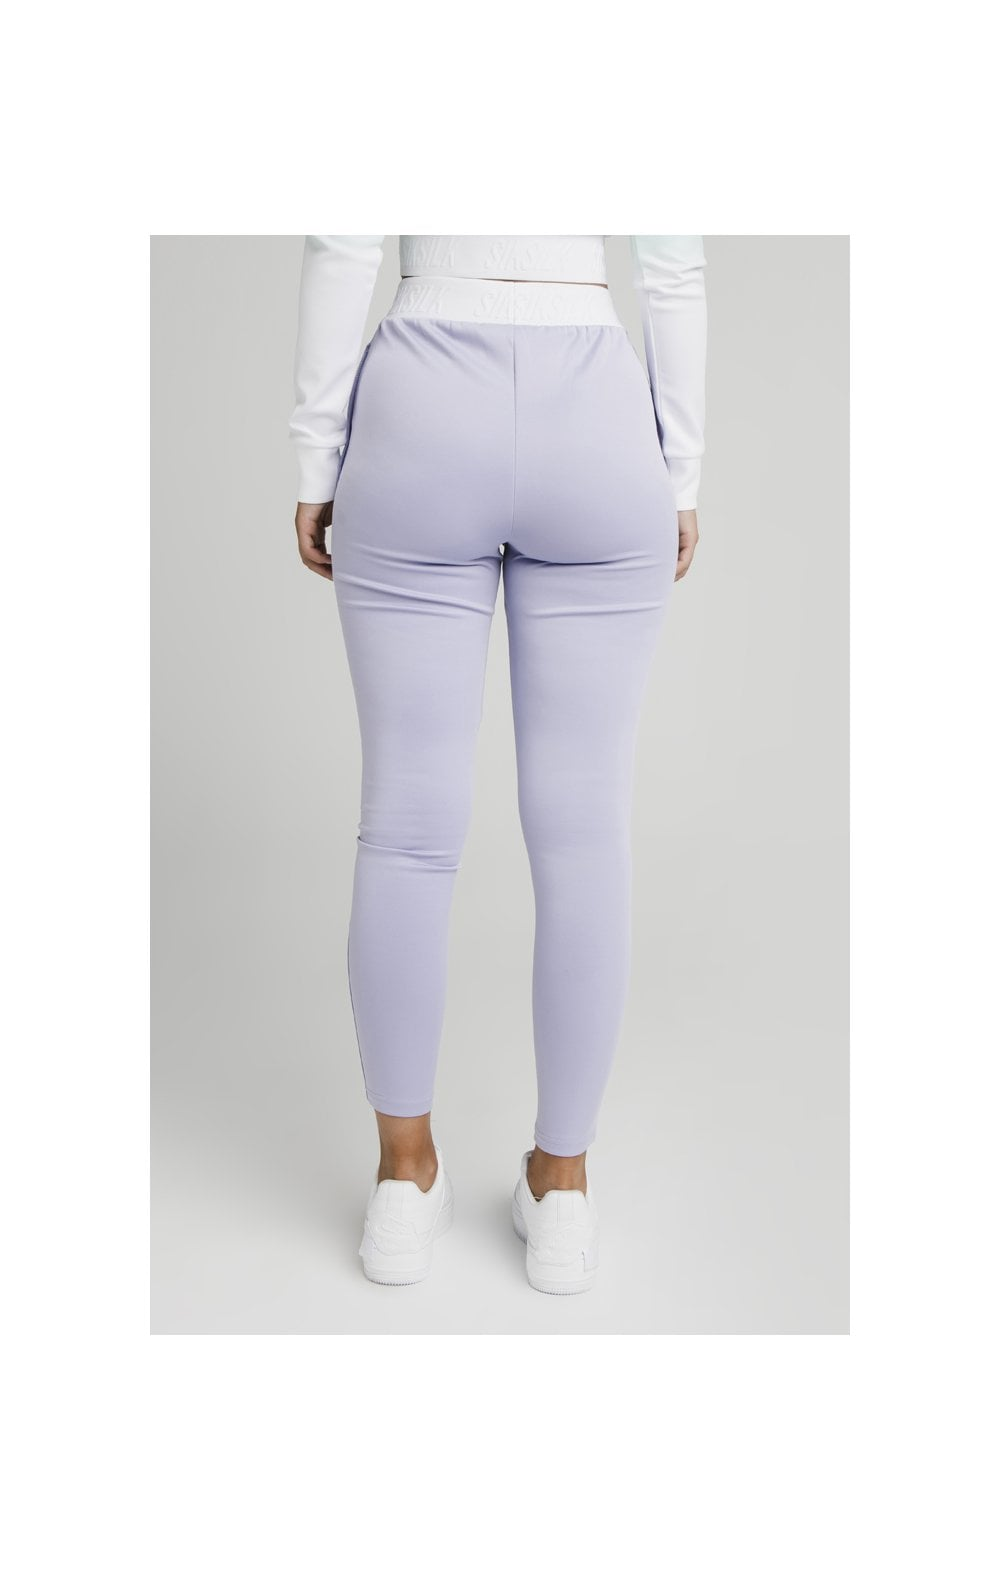 Load image into Gallery viewer, SikSilk Lilac Haze Track Pants - Lilac (8)